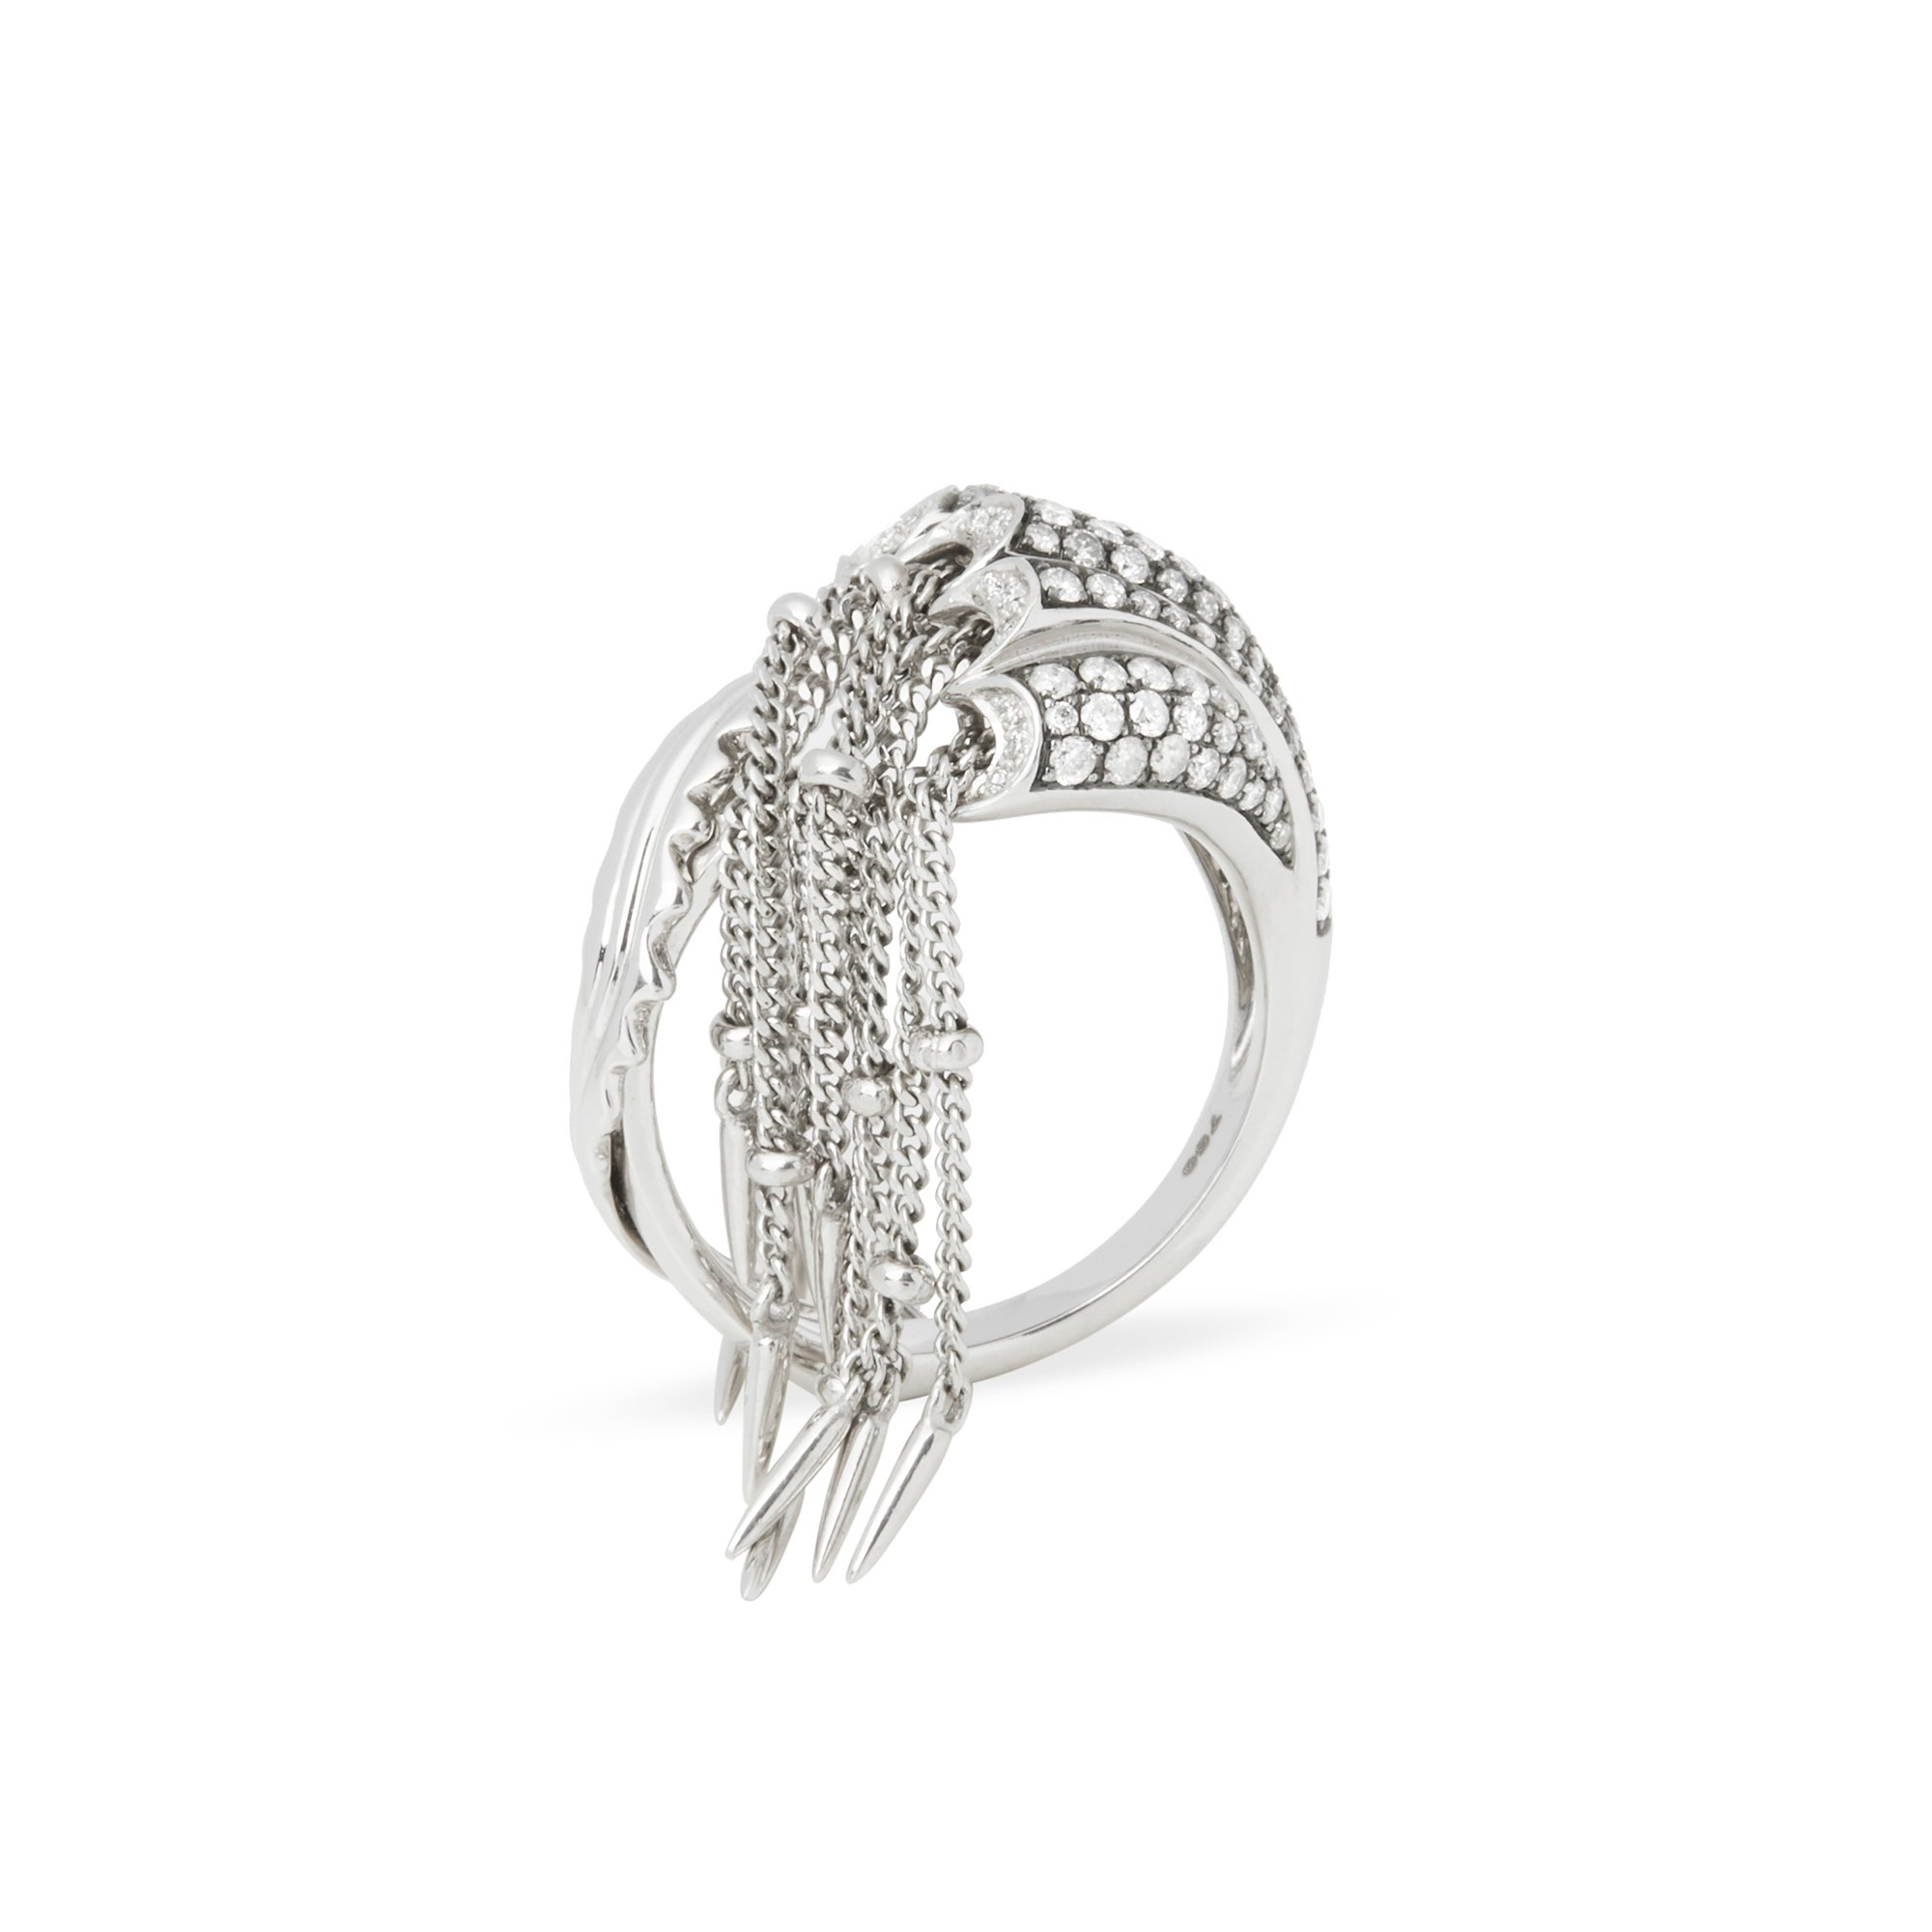 Stephen Webster Jewels Verne 18ct White Gold Jelly Fish Diamond Ring